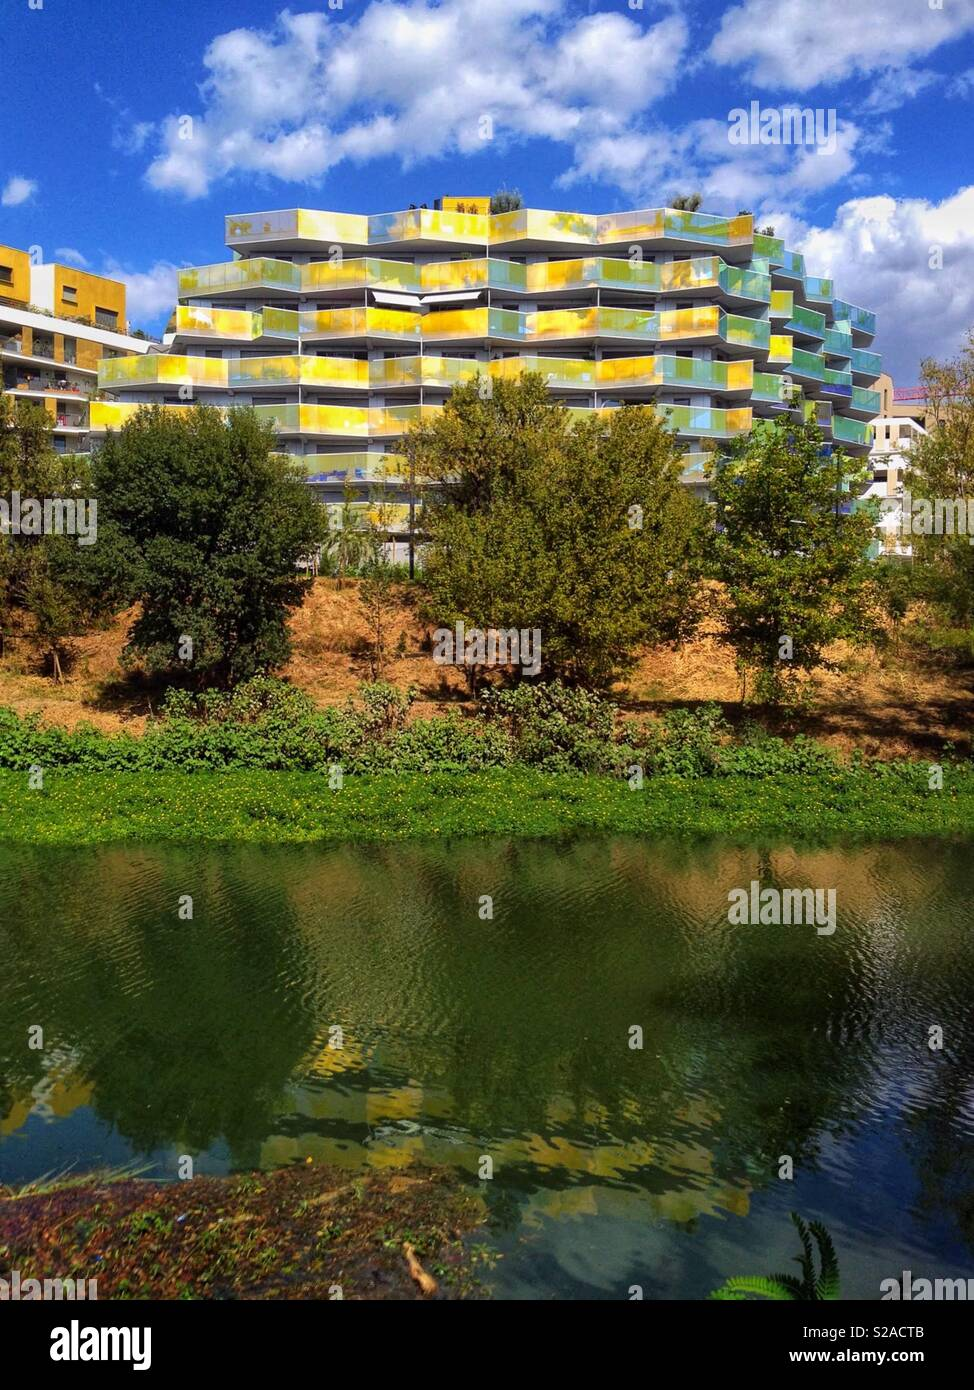 The Koh-I-Noor Building on the bank of the river Lez, Port Marianne, Montpellier France - Stock Image